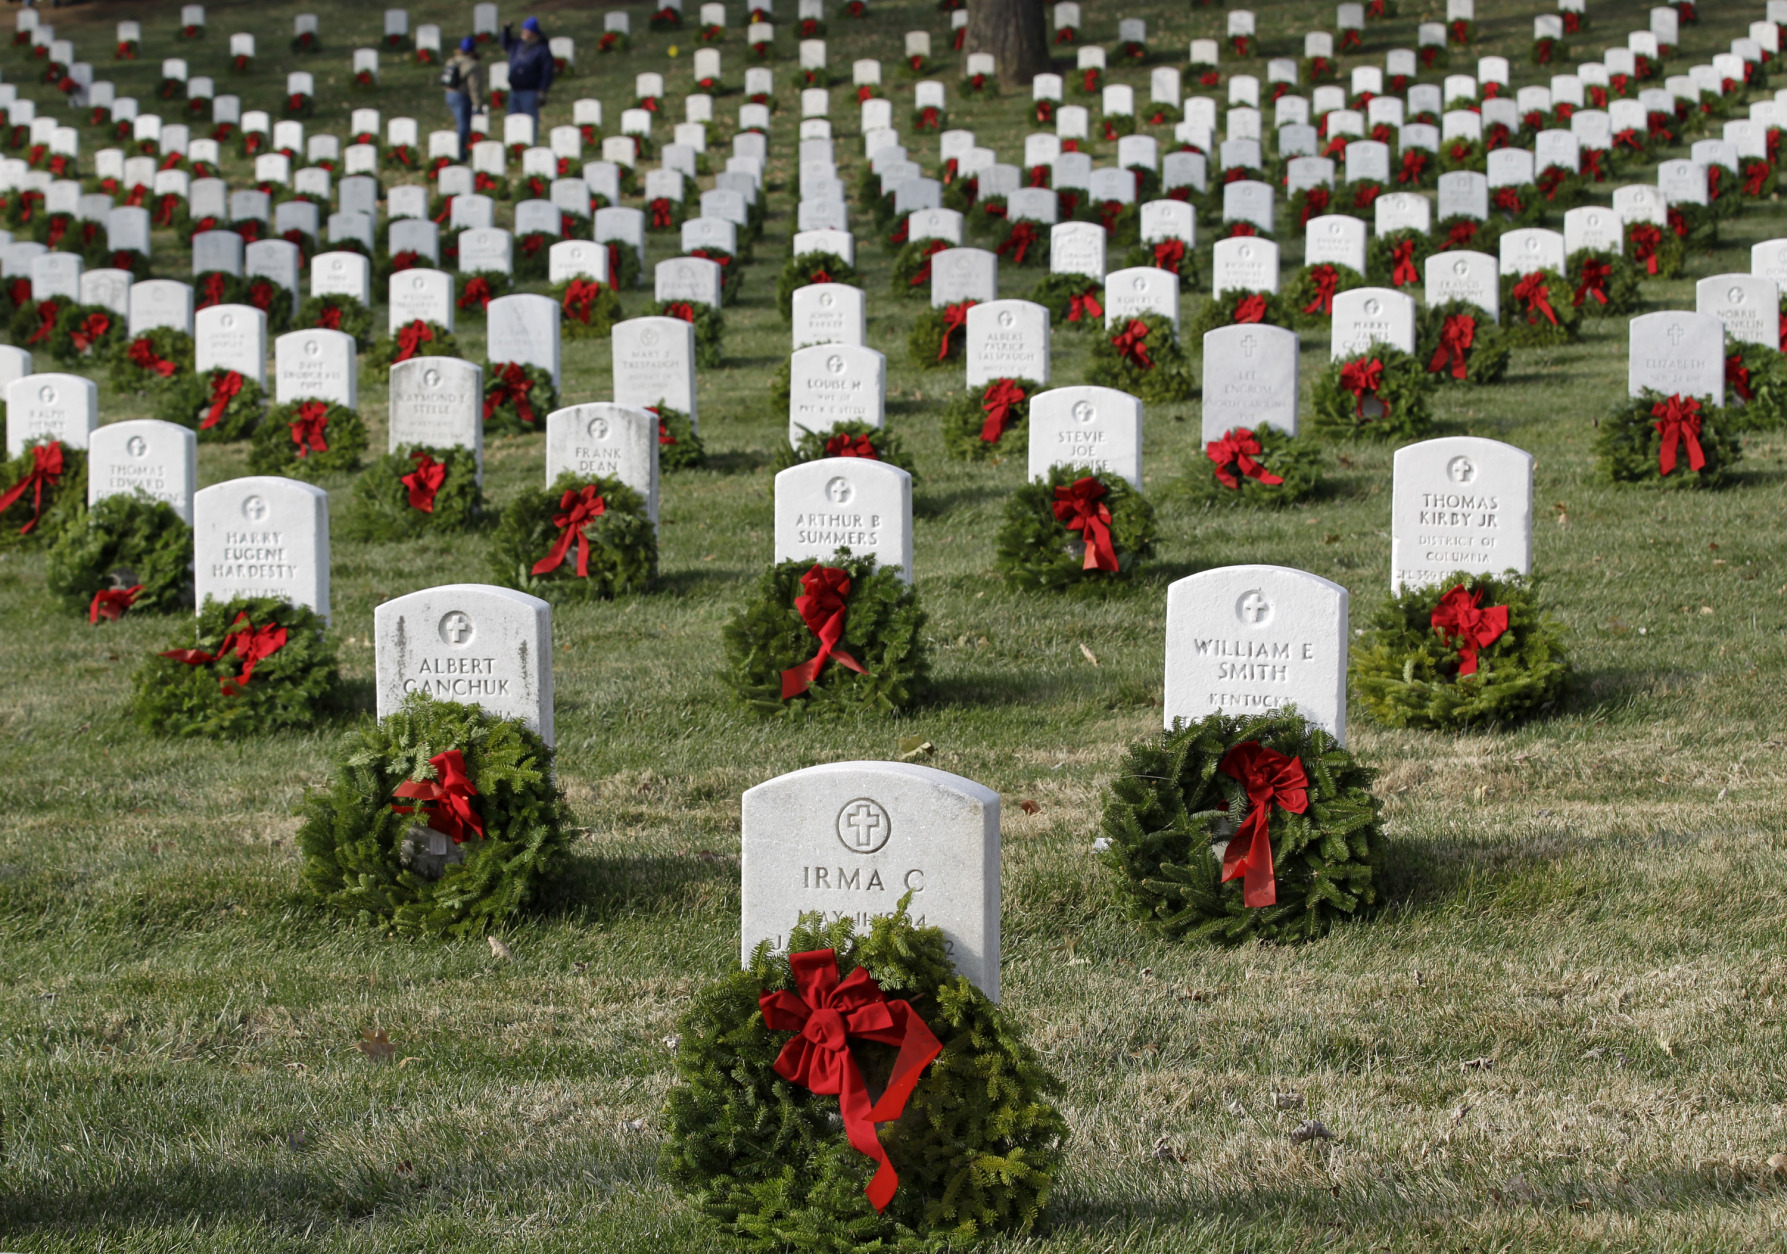 Convoy of wreaths departs for Arlington National Cemetery